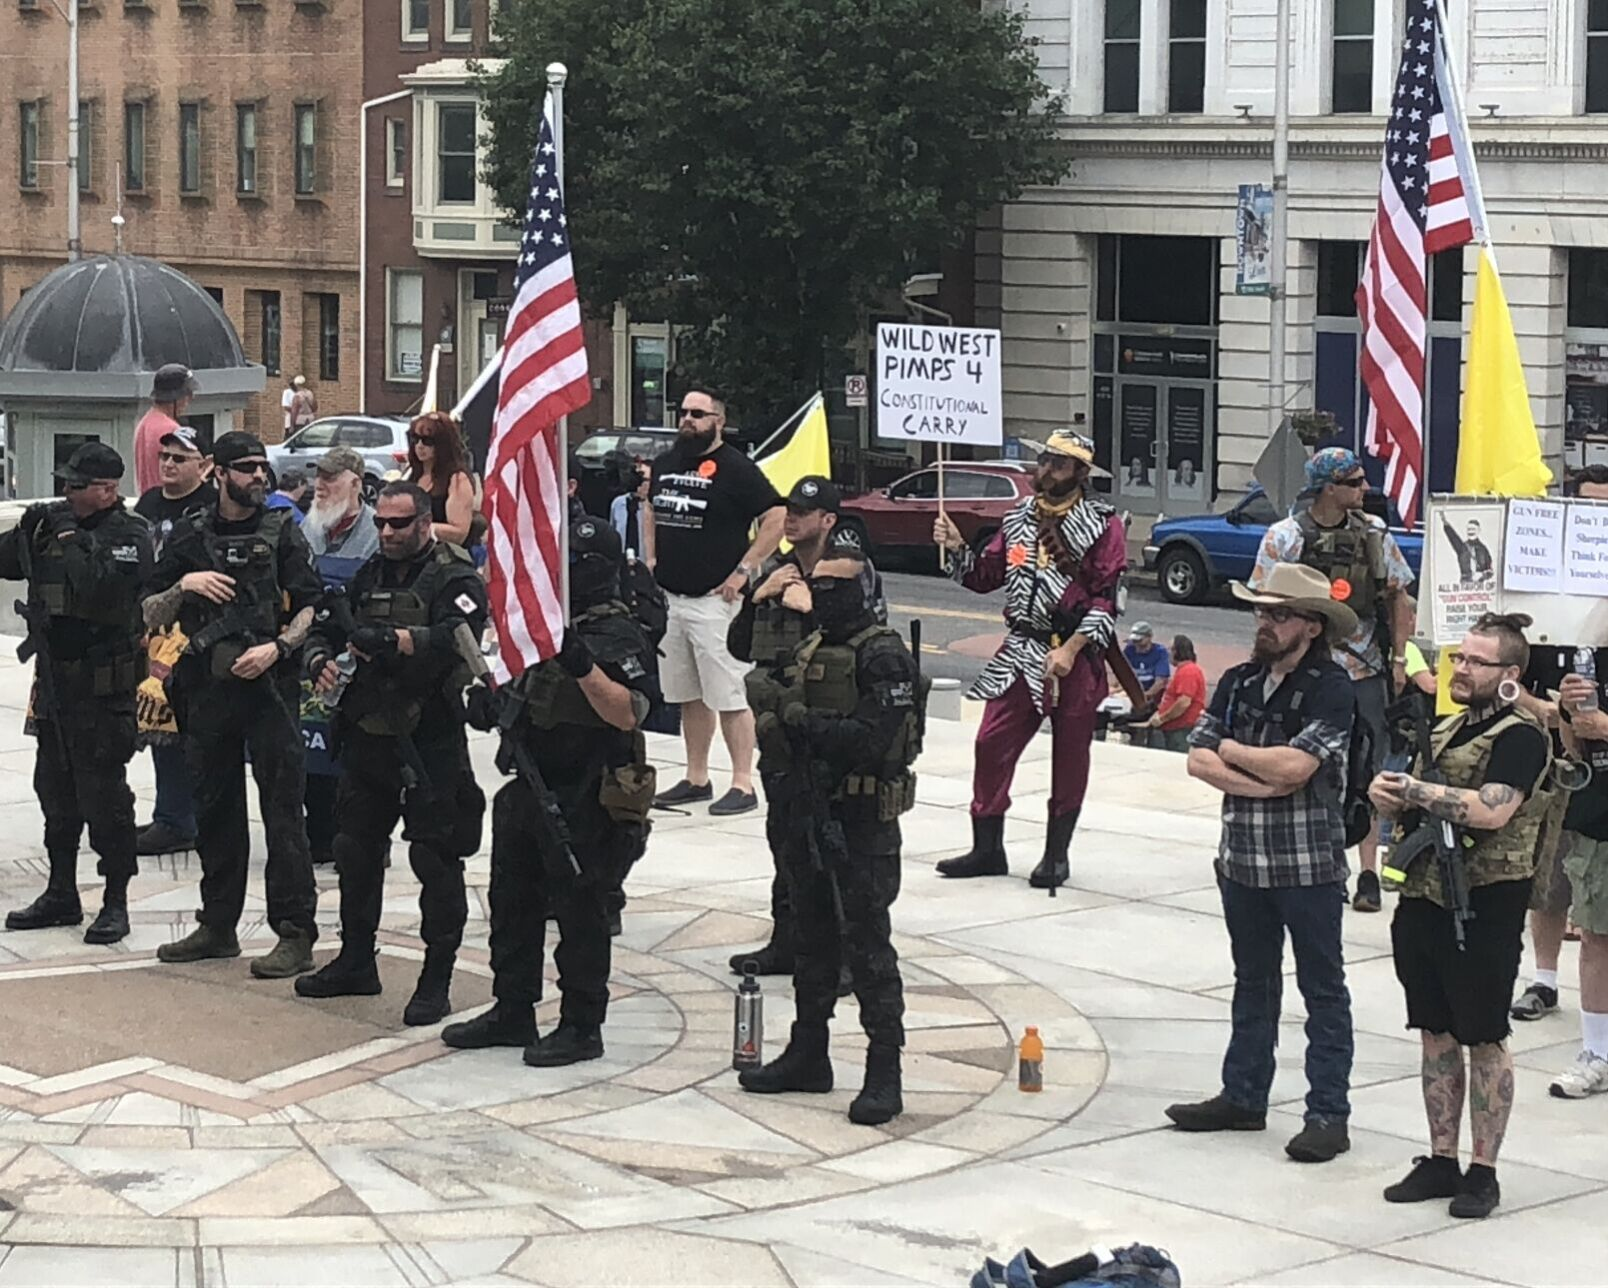 Gun rights supporters rally in Harrisburg